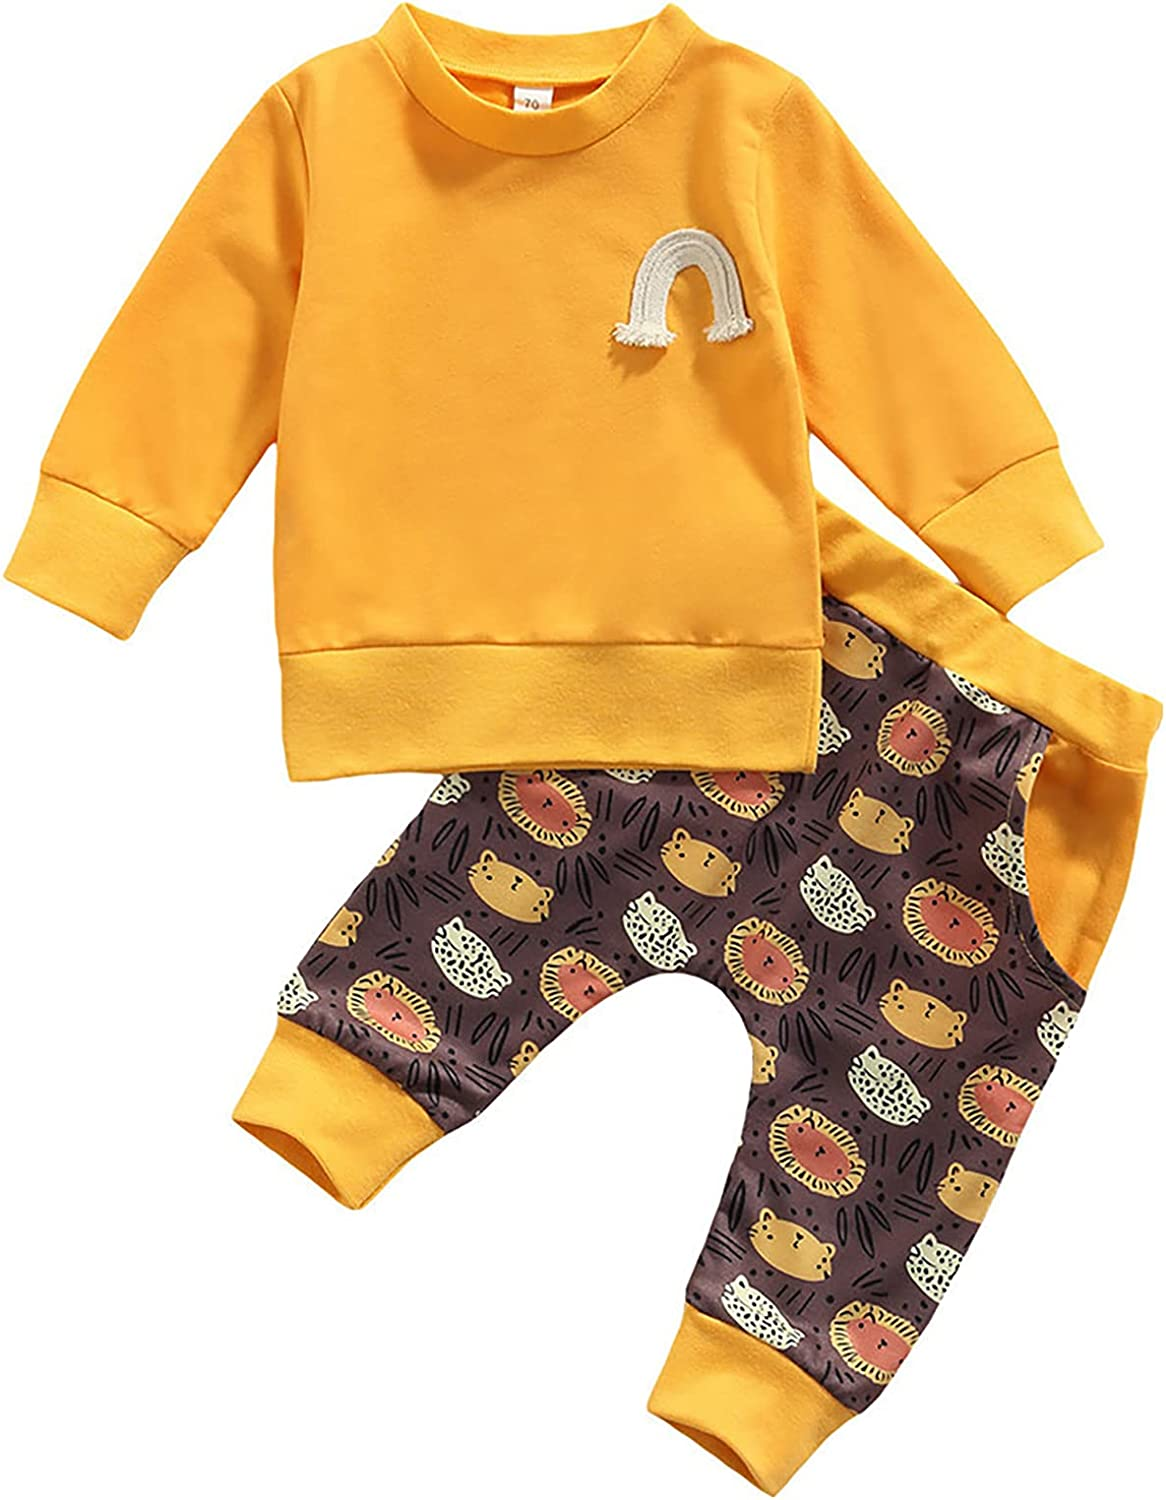 Toddler Baby Boy Girl Fall Outfit Long Sleeve Sweatshirt Tops + Pants Sweatsuit Kids 2Pcs Casual Clothes Set